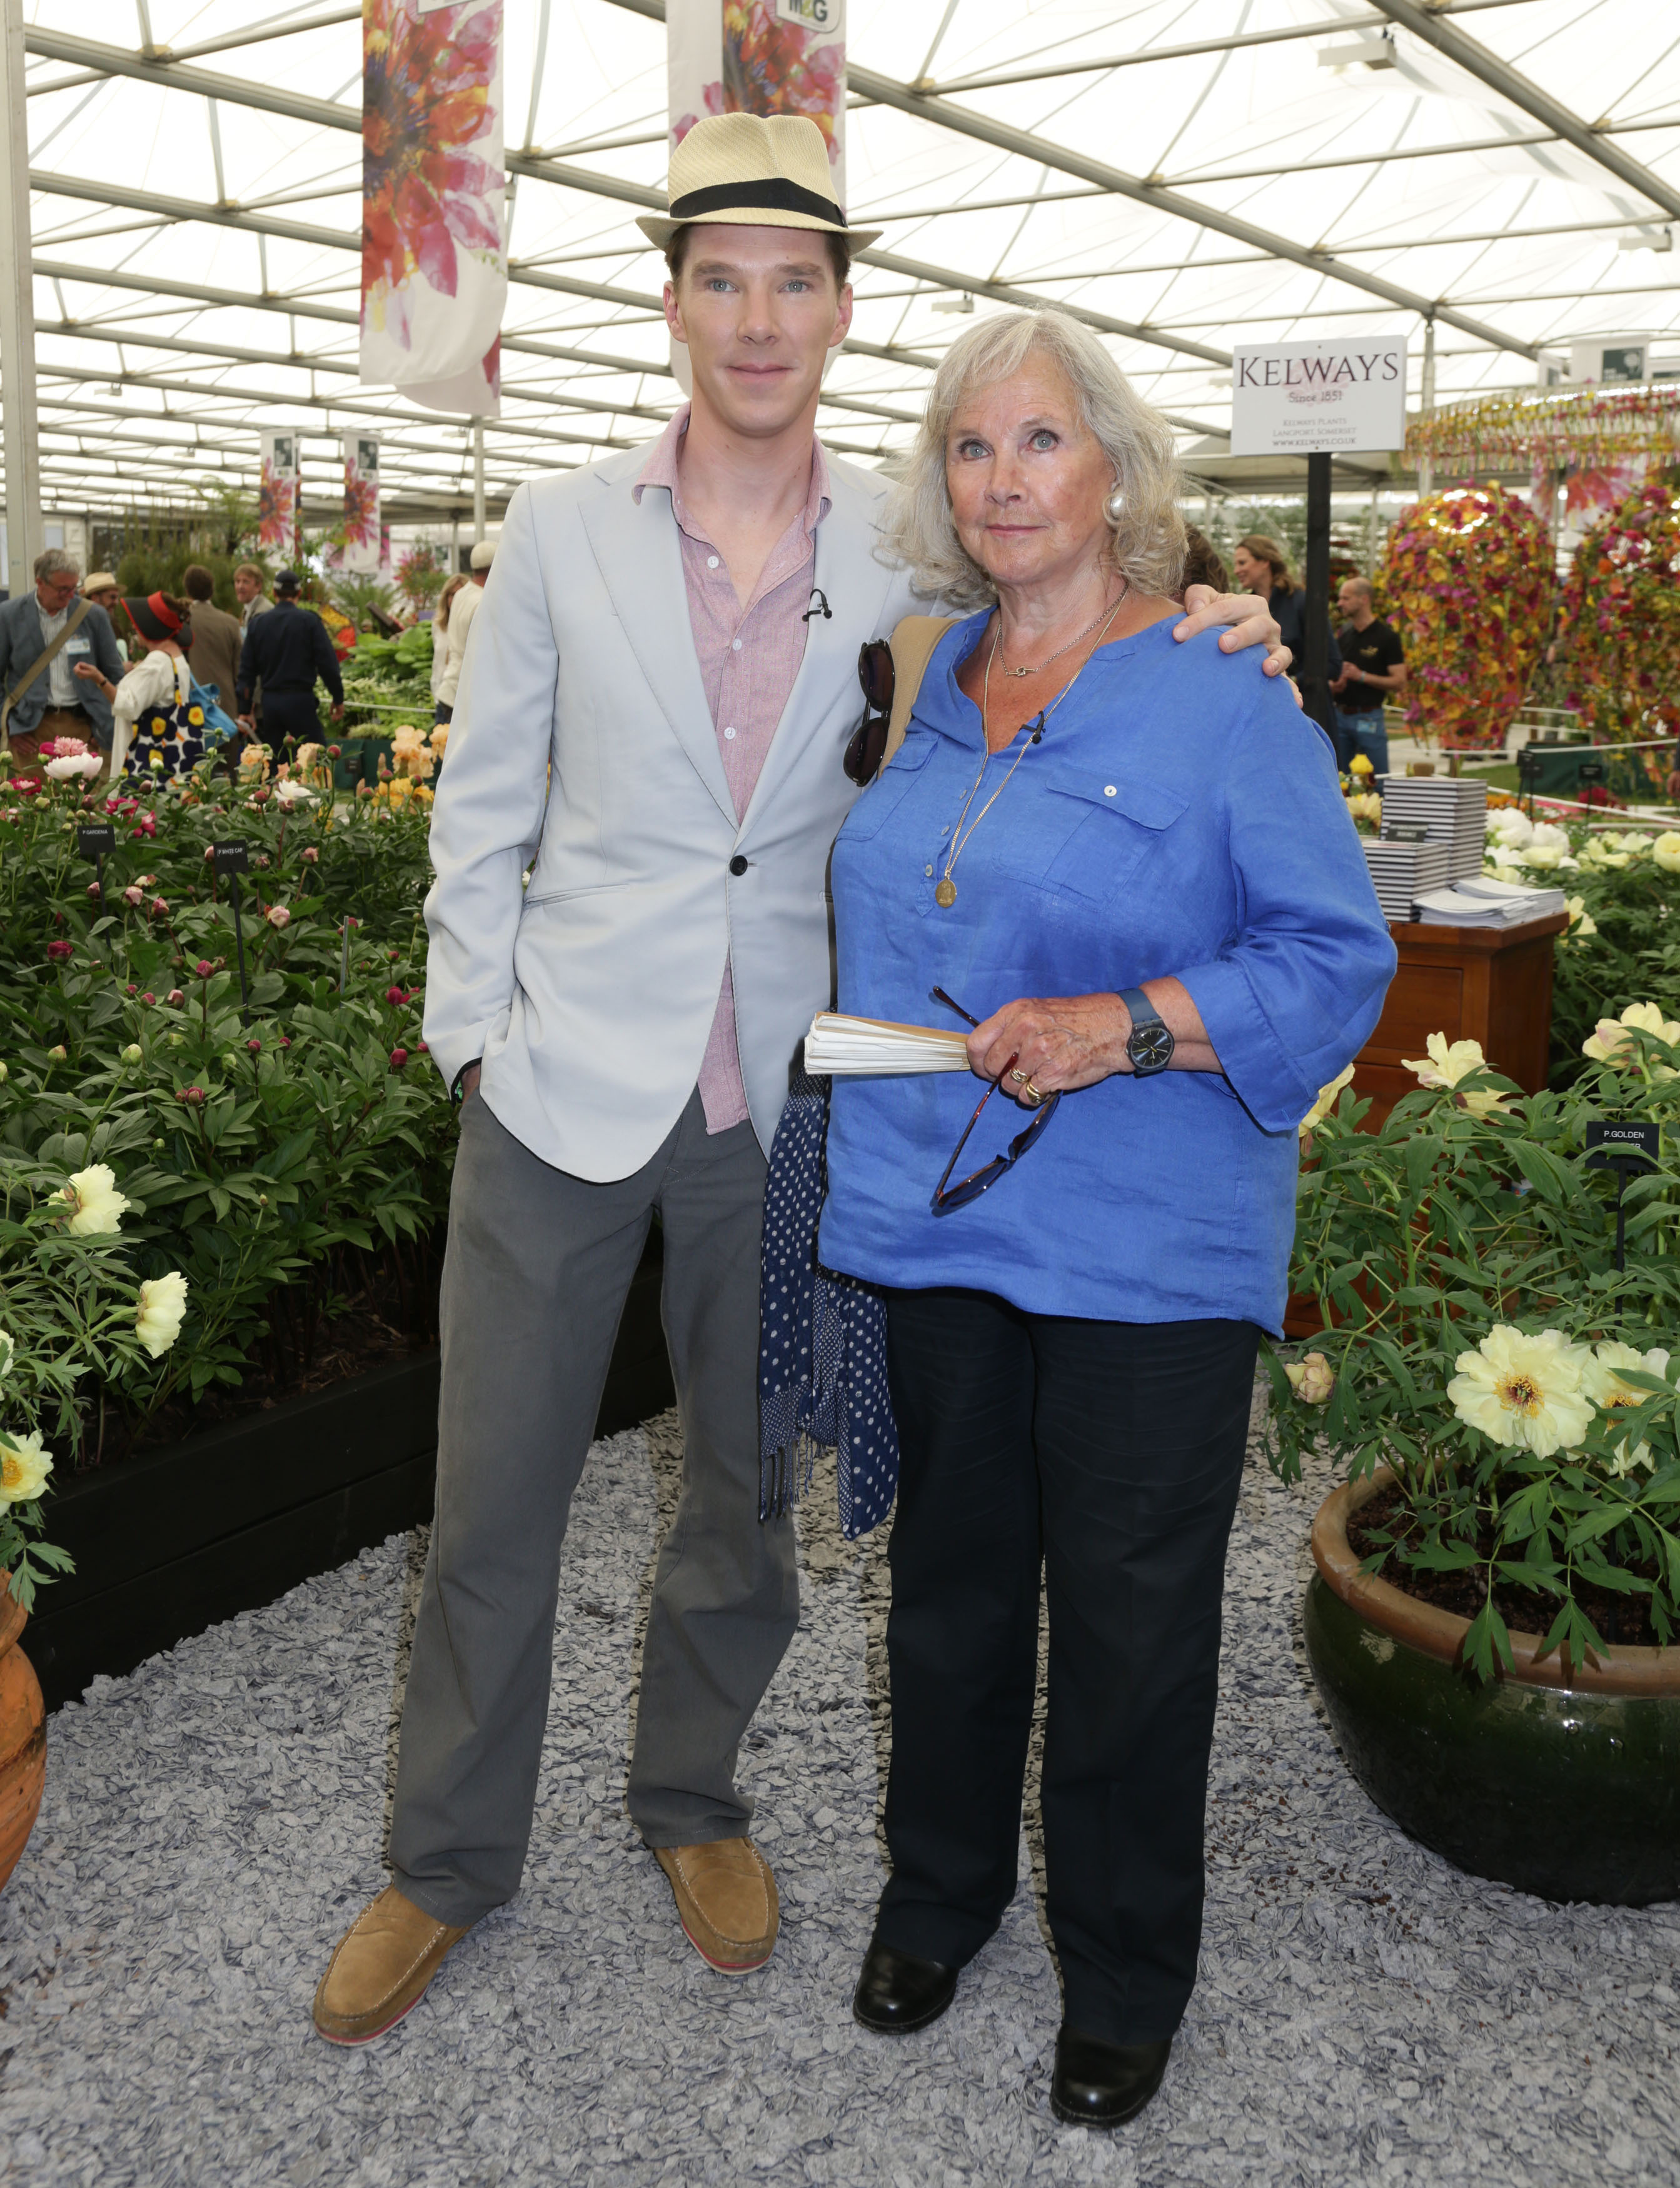 Benedict Cumberbatch and his mother Wanda Ventham